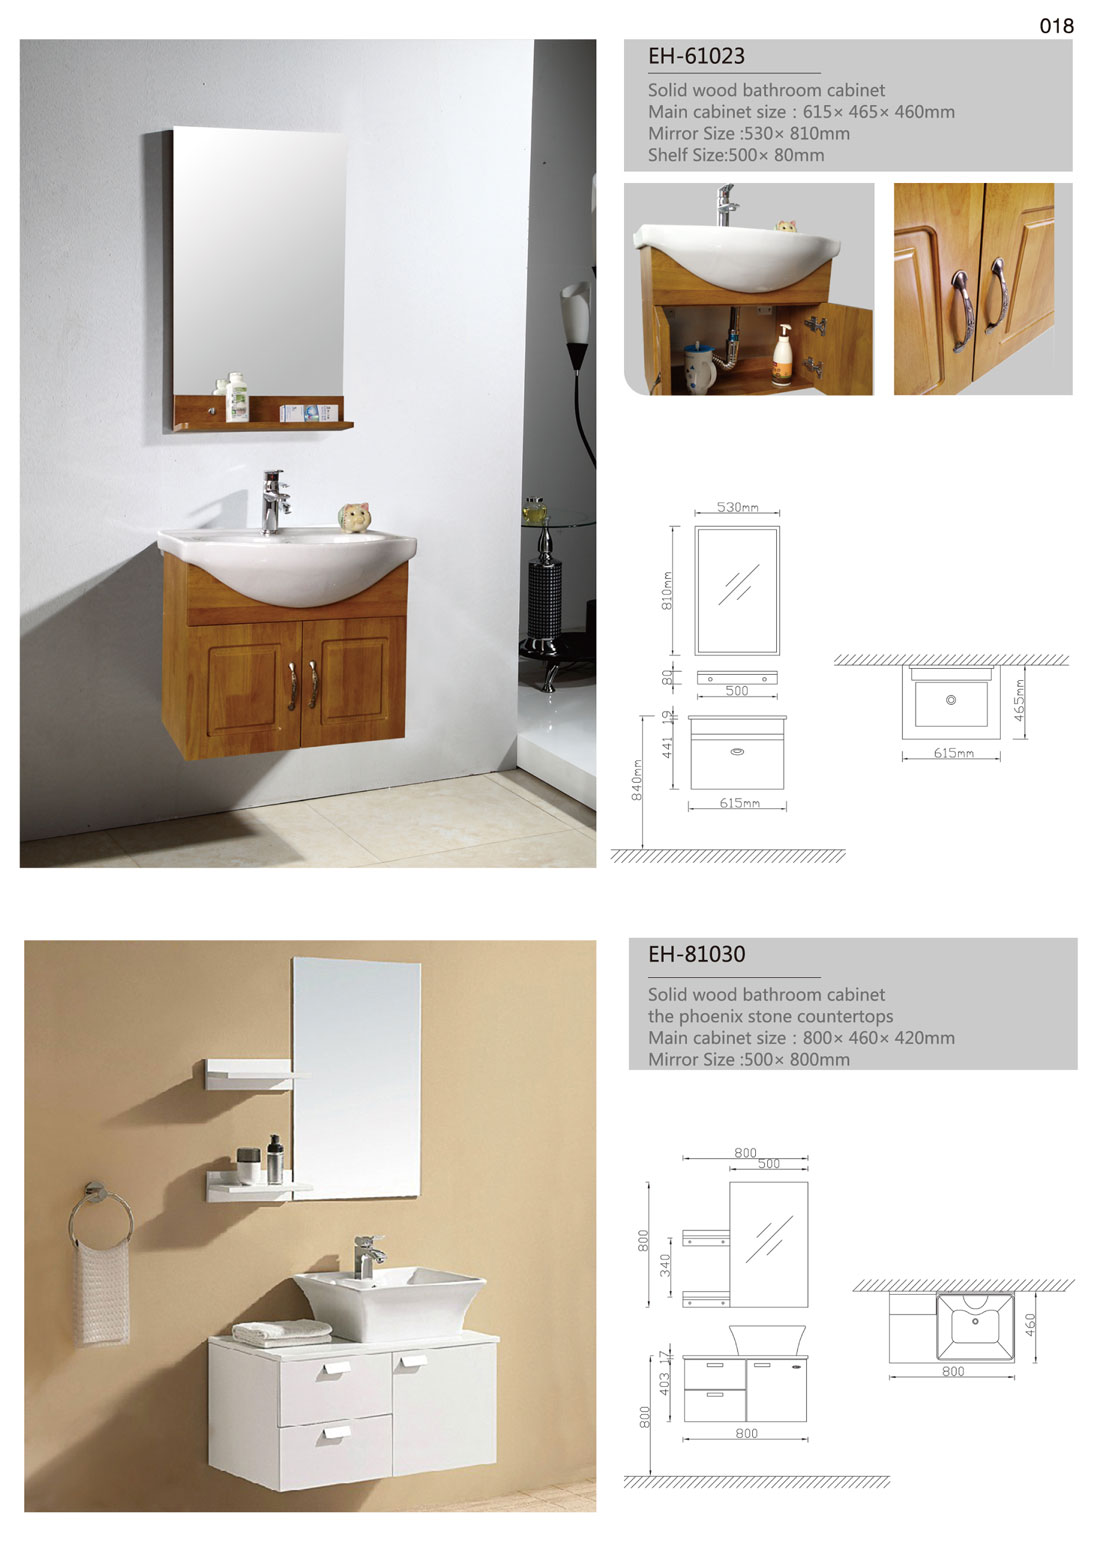 Solid wood bathroom cabinet Products